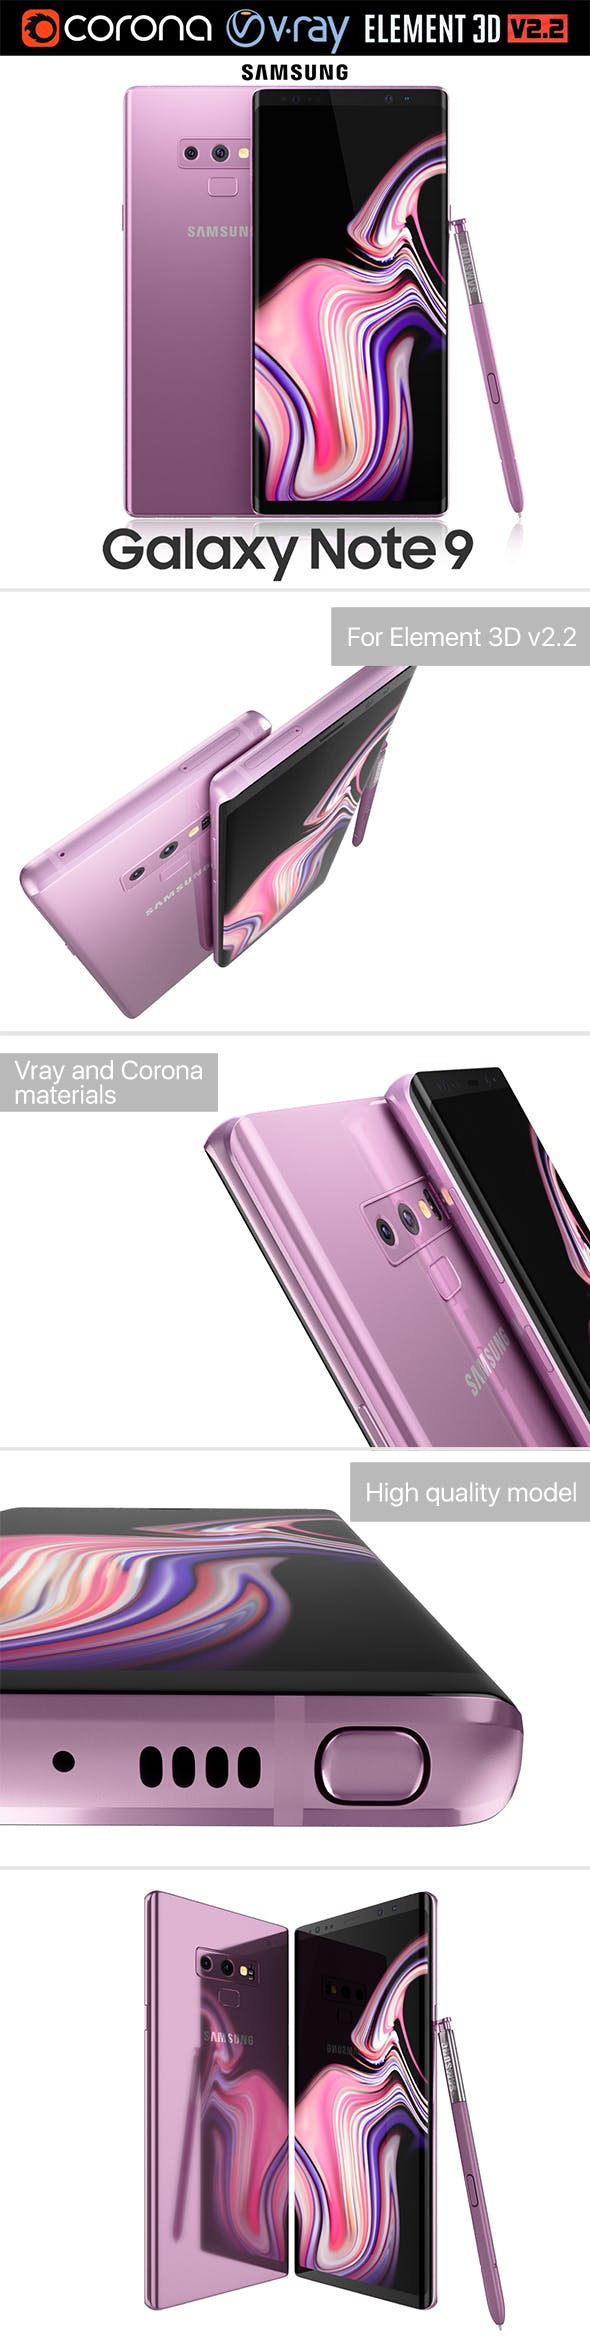 Samsung GALAXY Note 9 Lavender Purple - 3DOcean Item for Sale